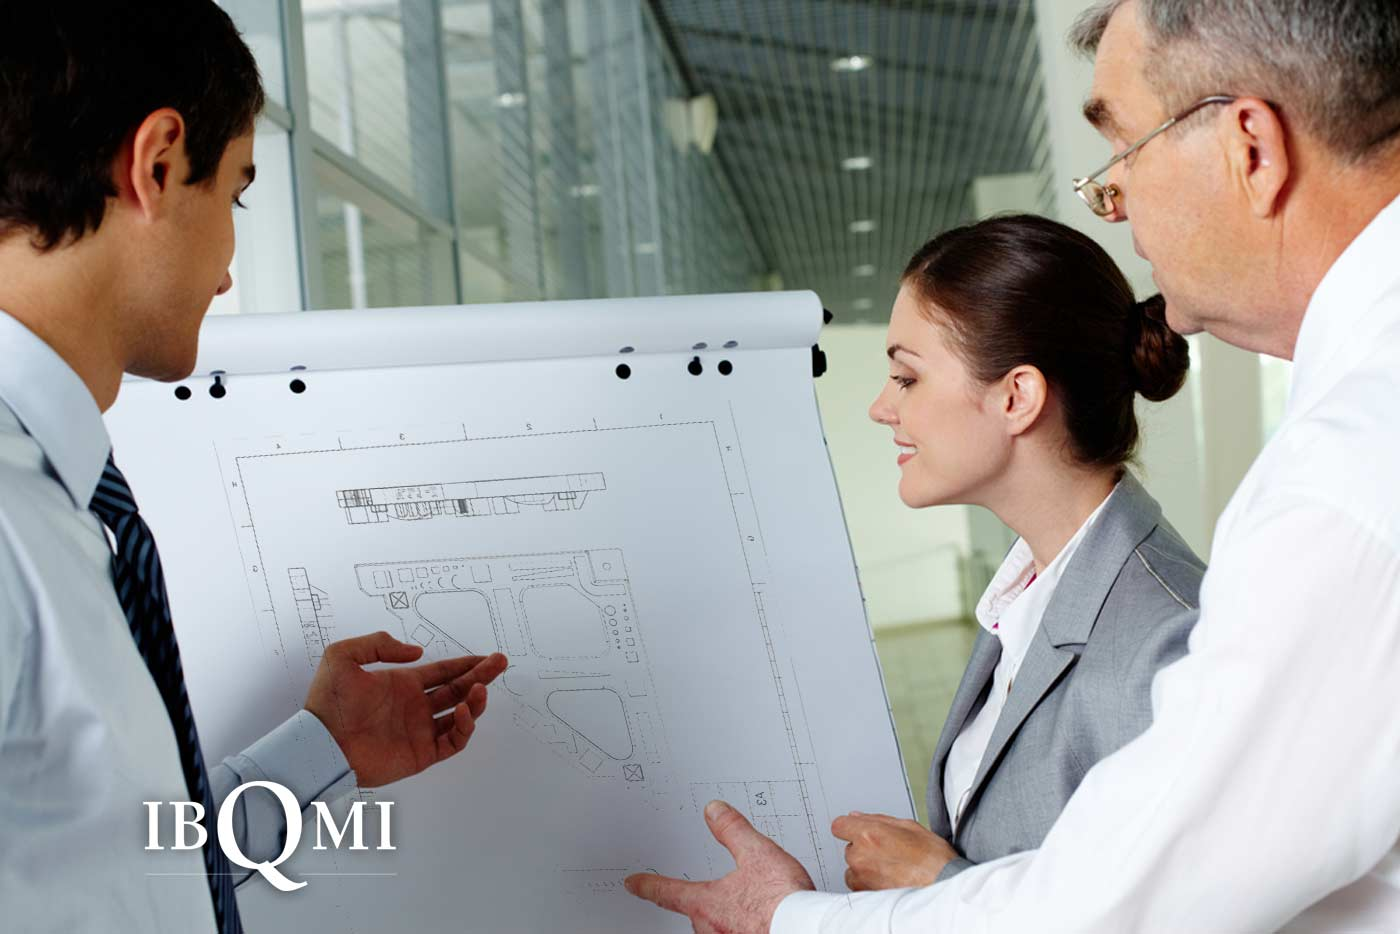 How ibqmi can help you to develop products that are excellent and accessible to the customers